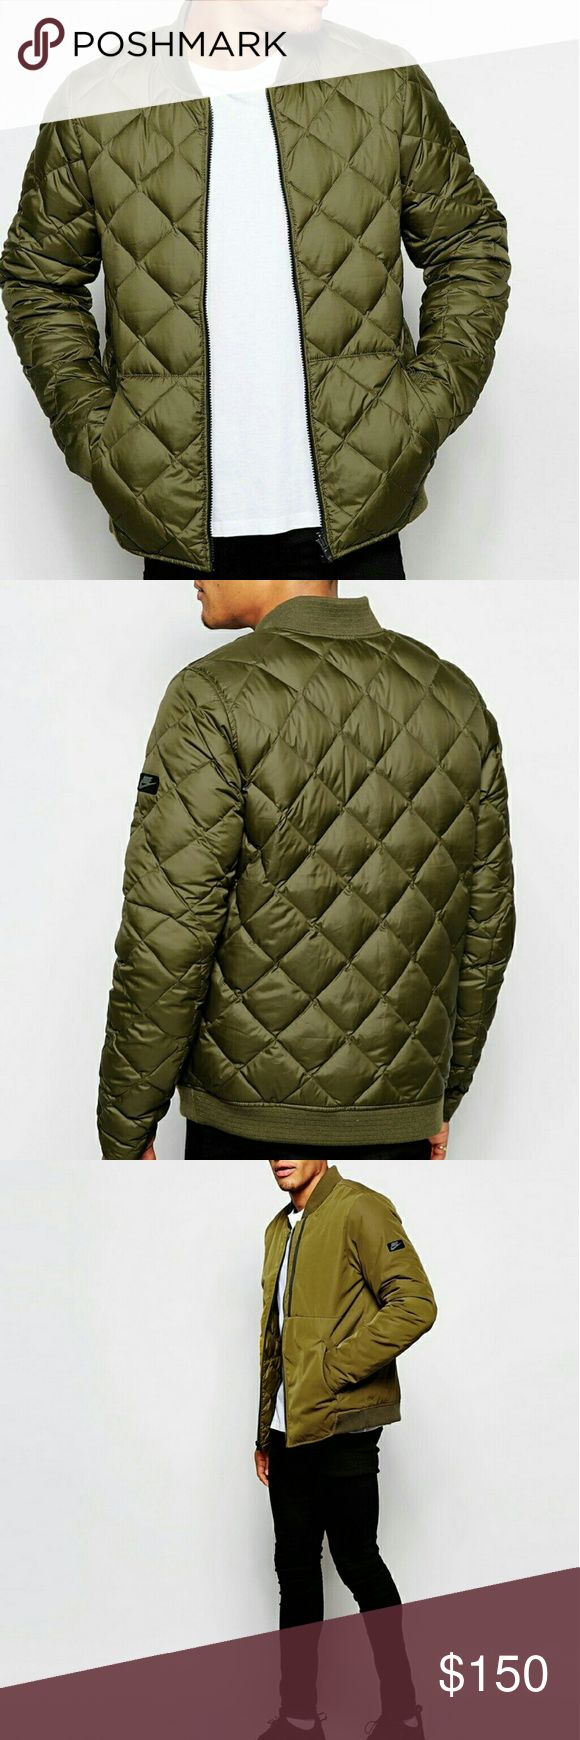 Nike Bomber Brand new! Get two great looks in one, both down insulated for warmth, in this reversible jacket from Nike Nike Jackets & Coats Bomber & Varsity